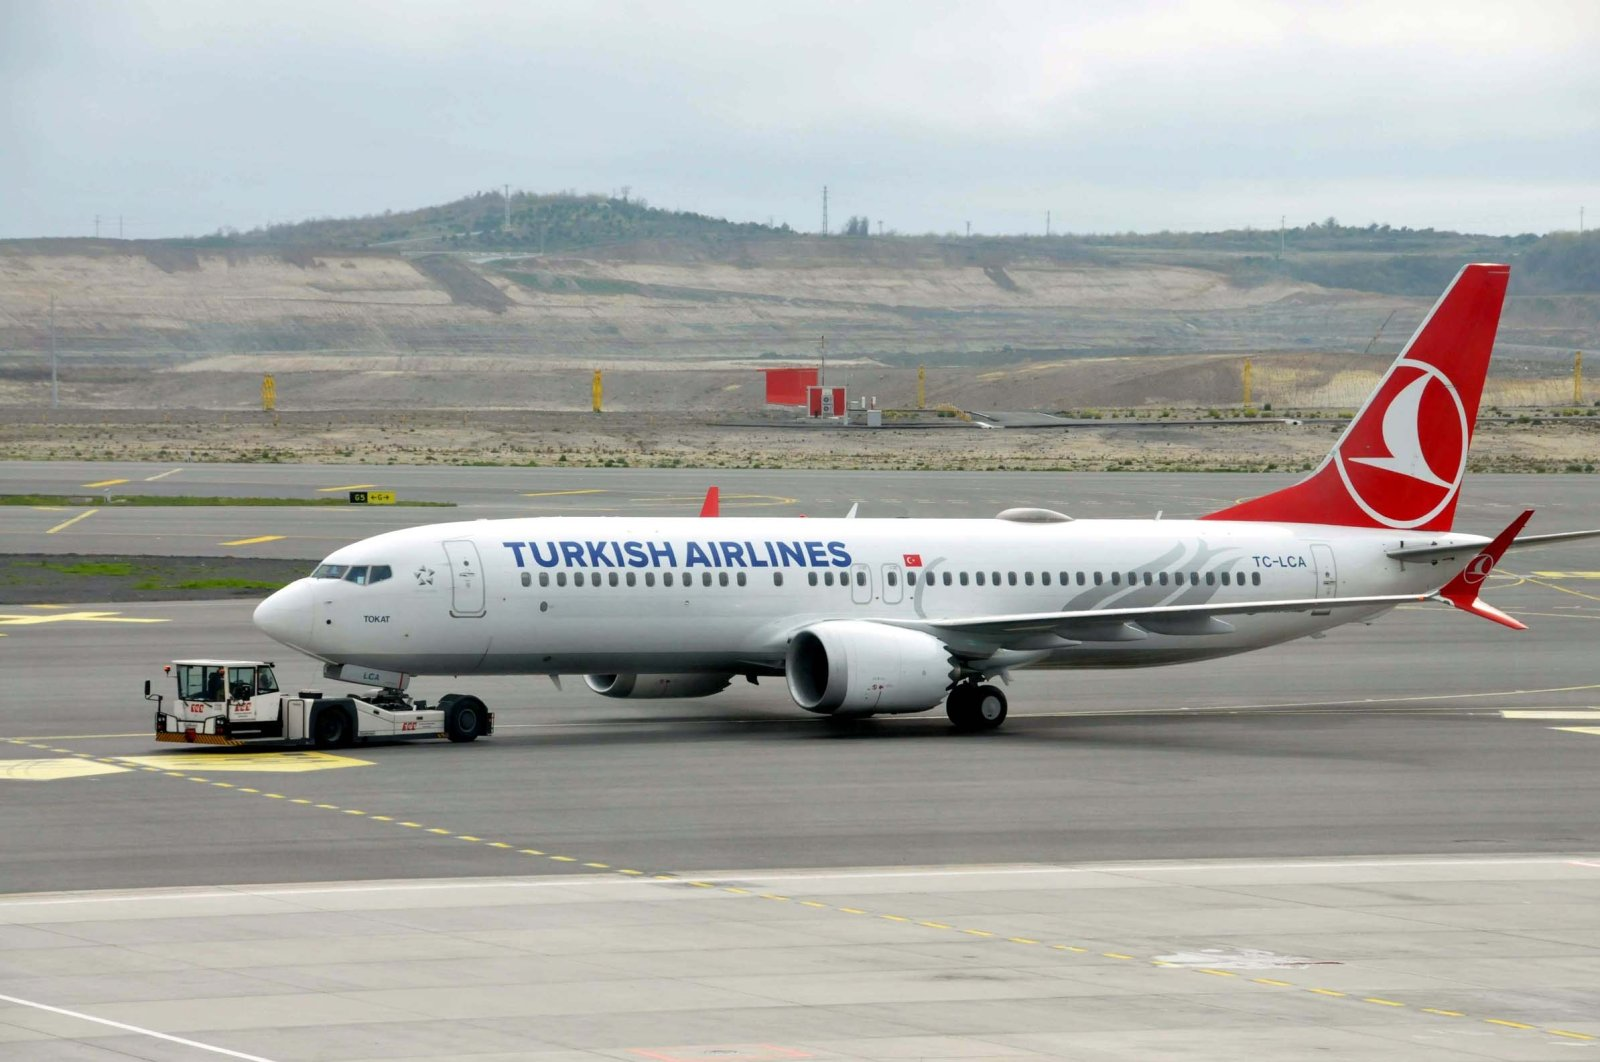 A Turkish Airlines Boeing 737 Max aircraft is seen at Istanbul Airport, Turkey, April 15, 2021. (DHA Photo)